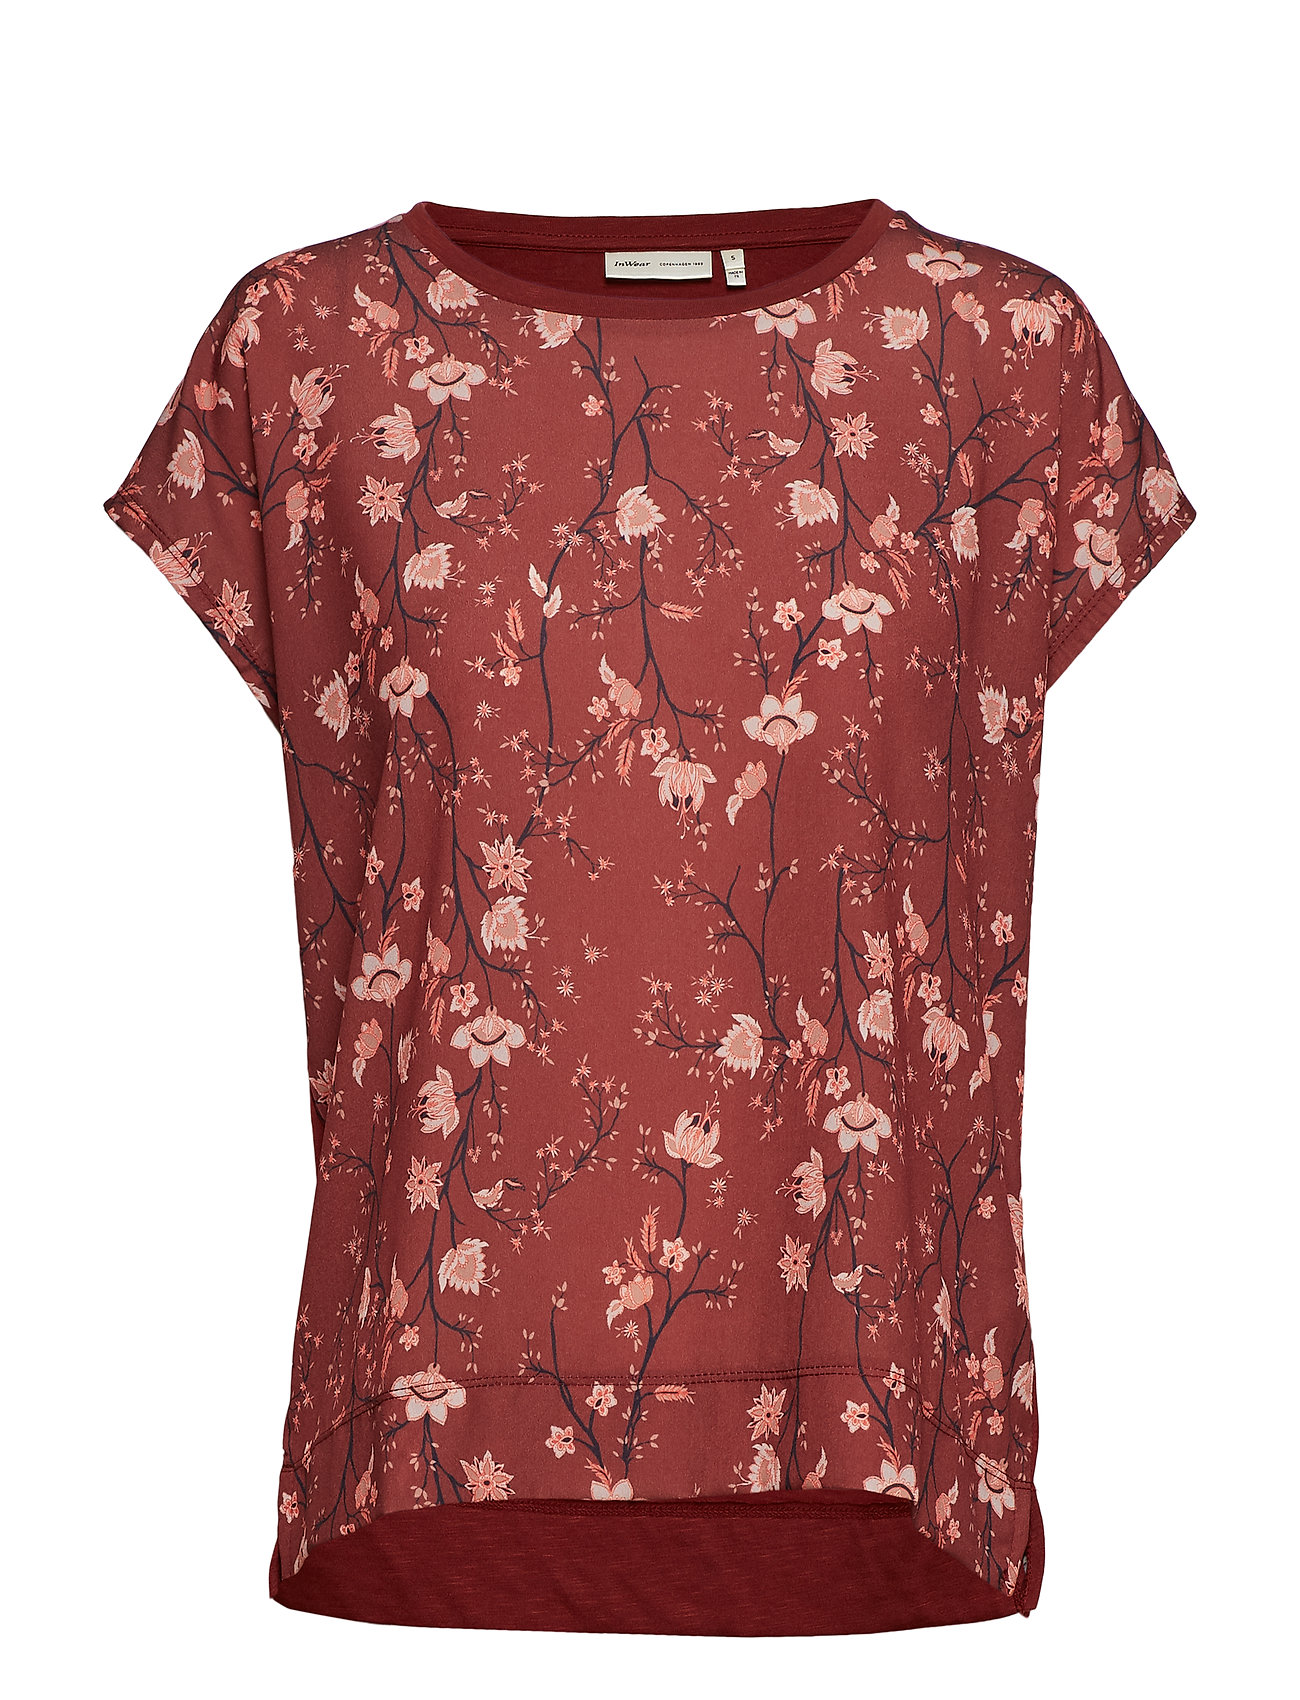 InWear Sicily Tshirt - RUSSET BROWN ASIAN FLORAL